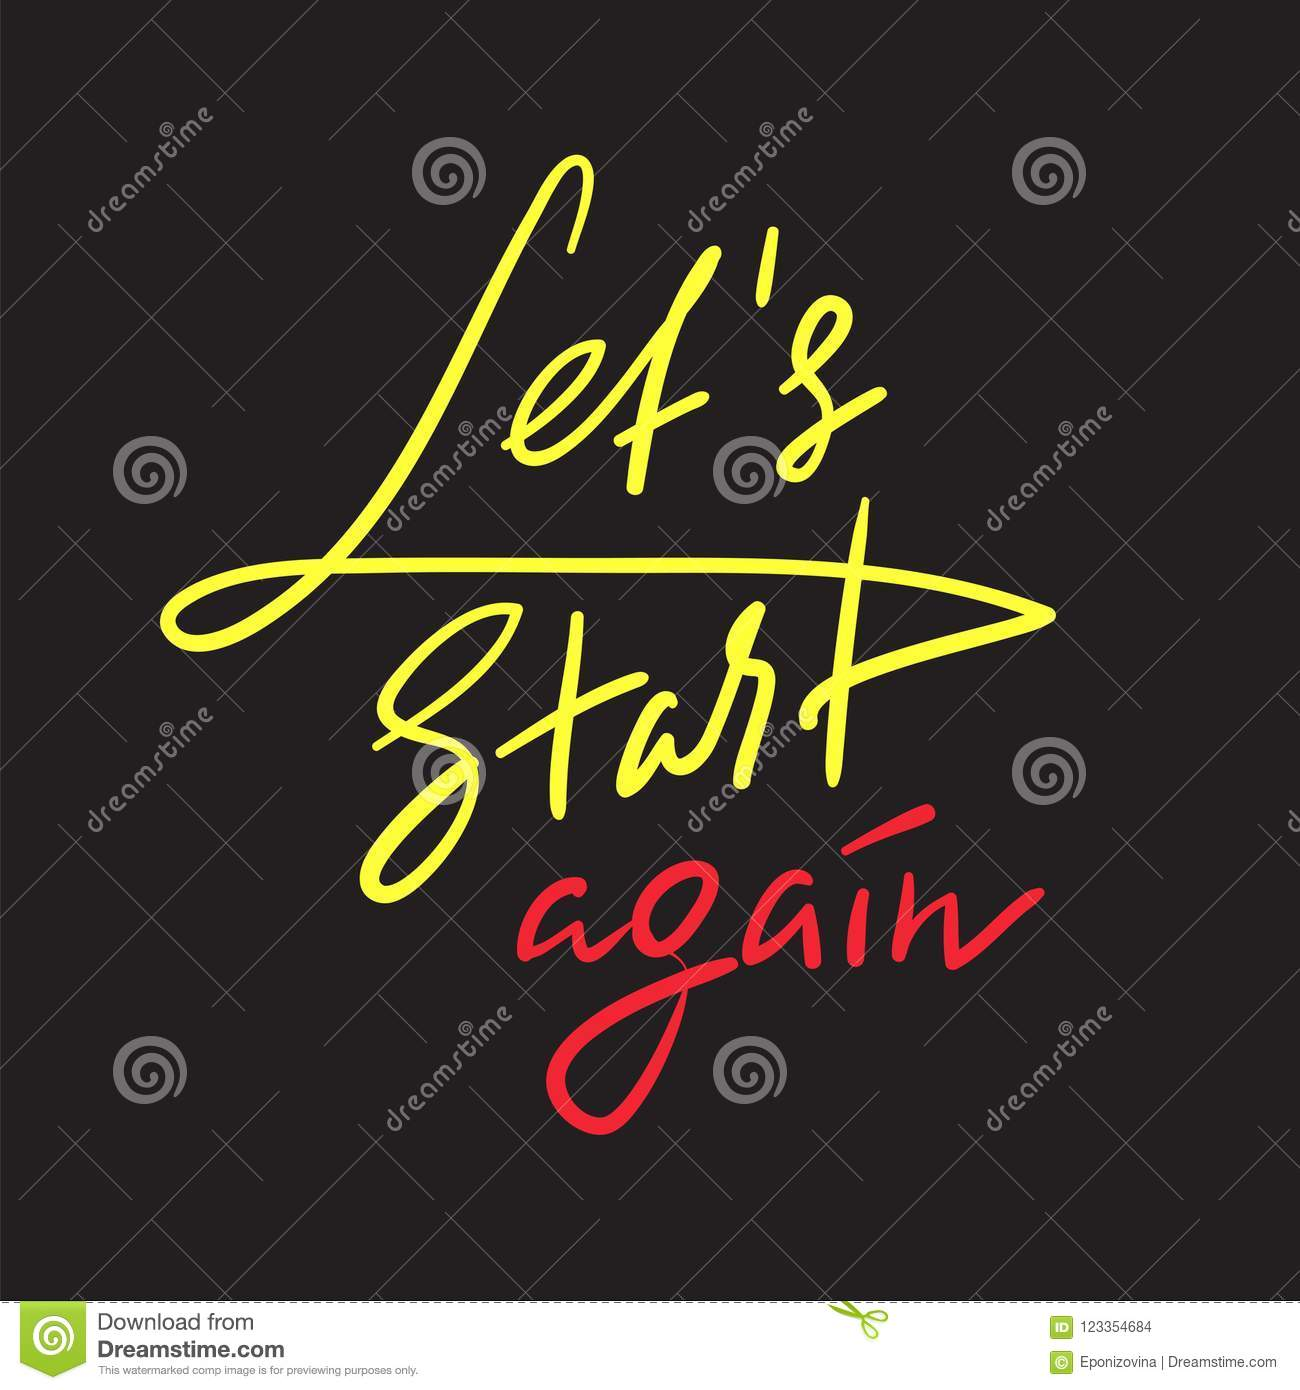 Let`s Start Again - emotional love quote. Hand drawn beautiful lettering. Print for inspirational poster, t-shirt, bag, cups,